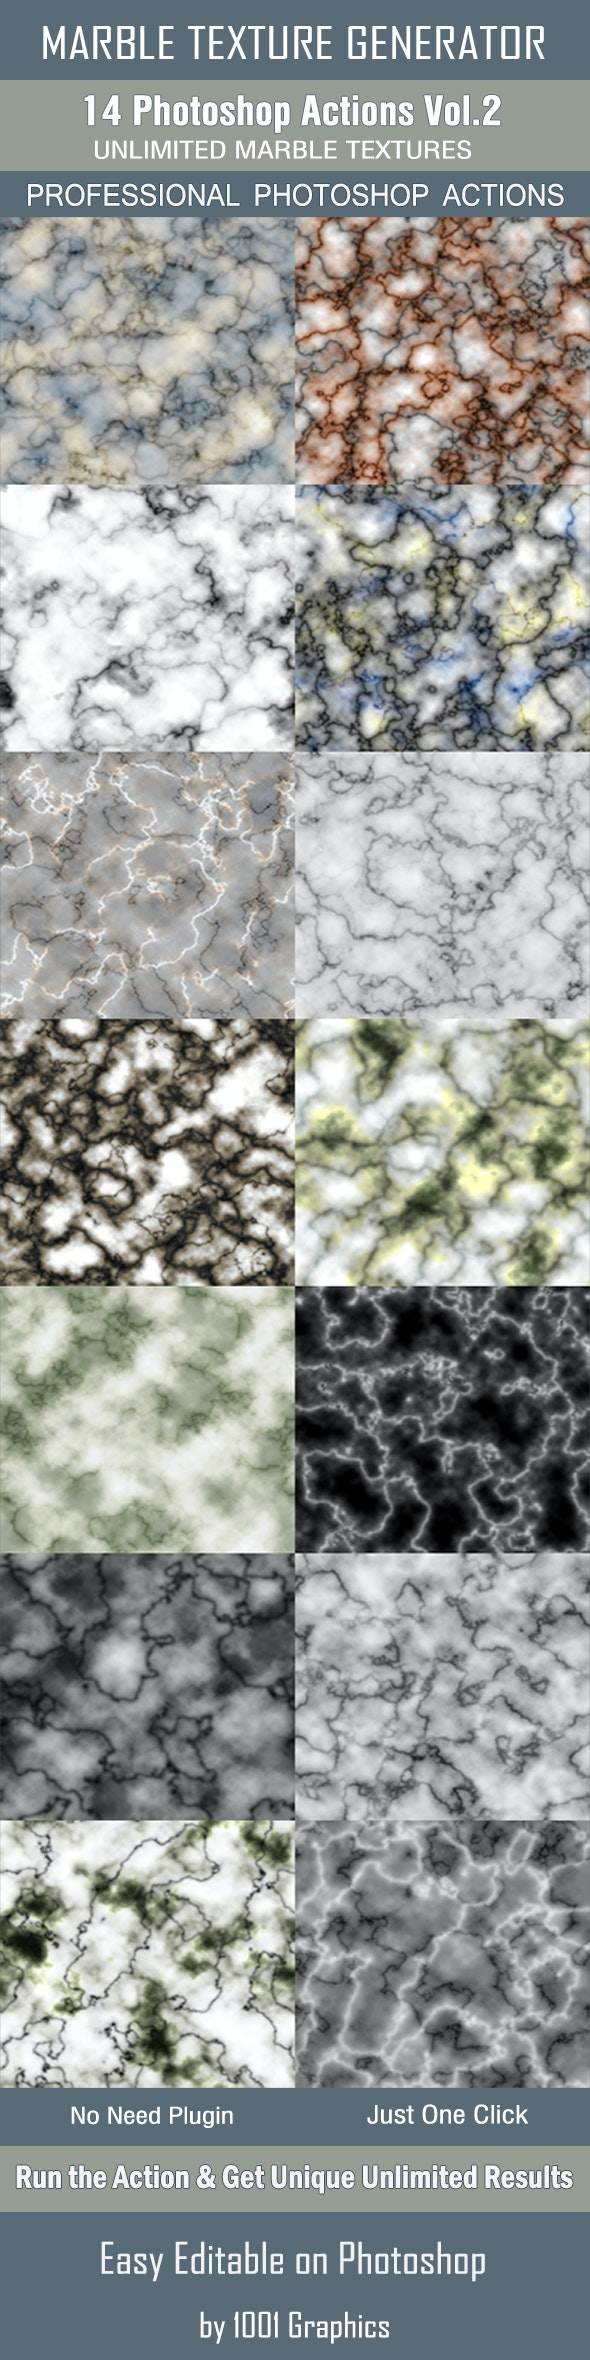 Marble Texture Generator - 14 Photoshop Actions Vol.2 - Photo Effects Actions